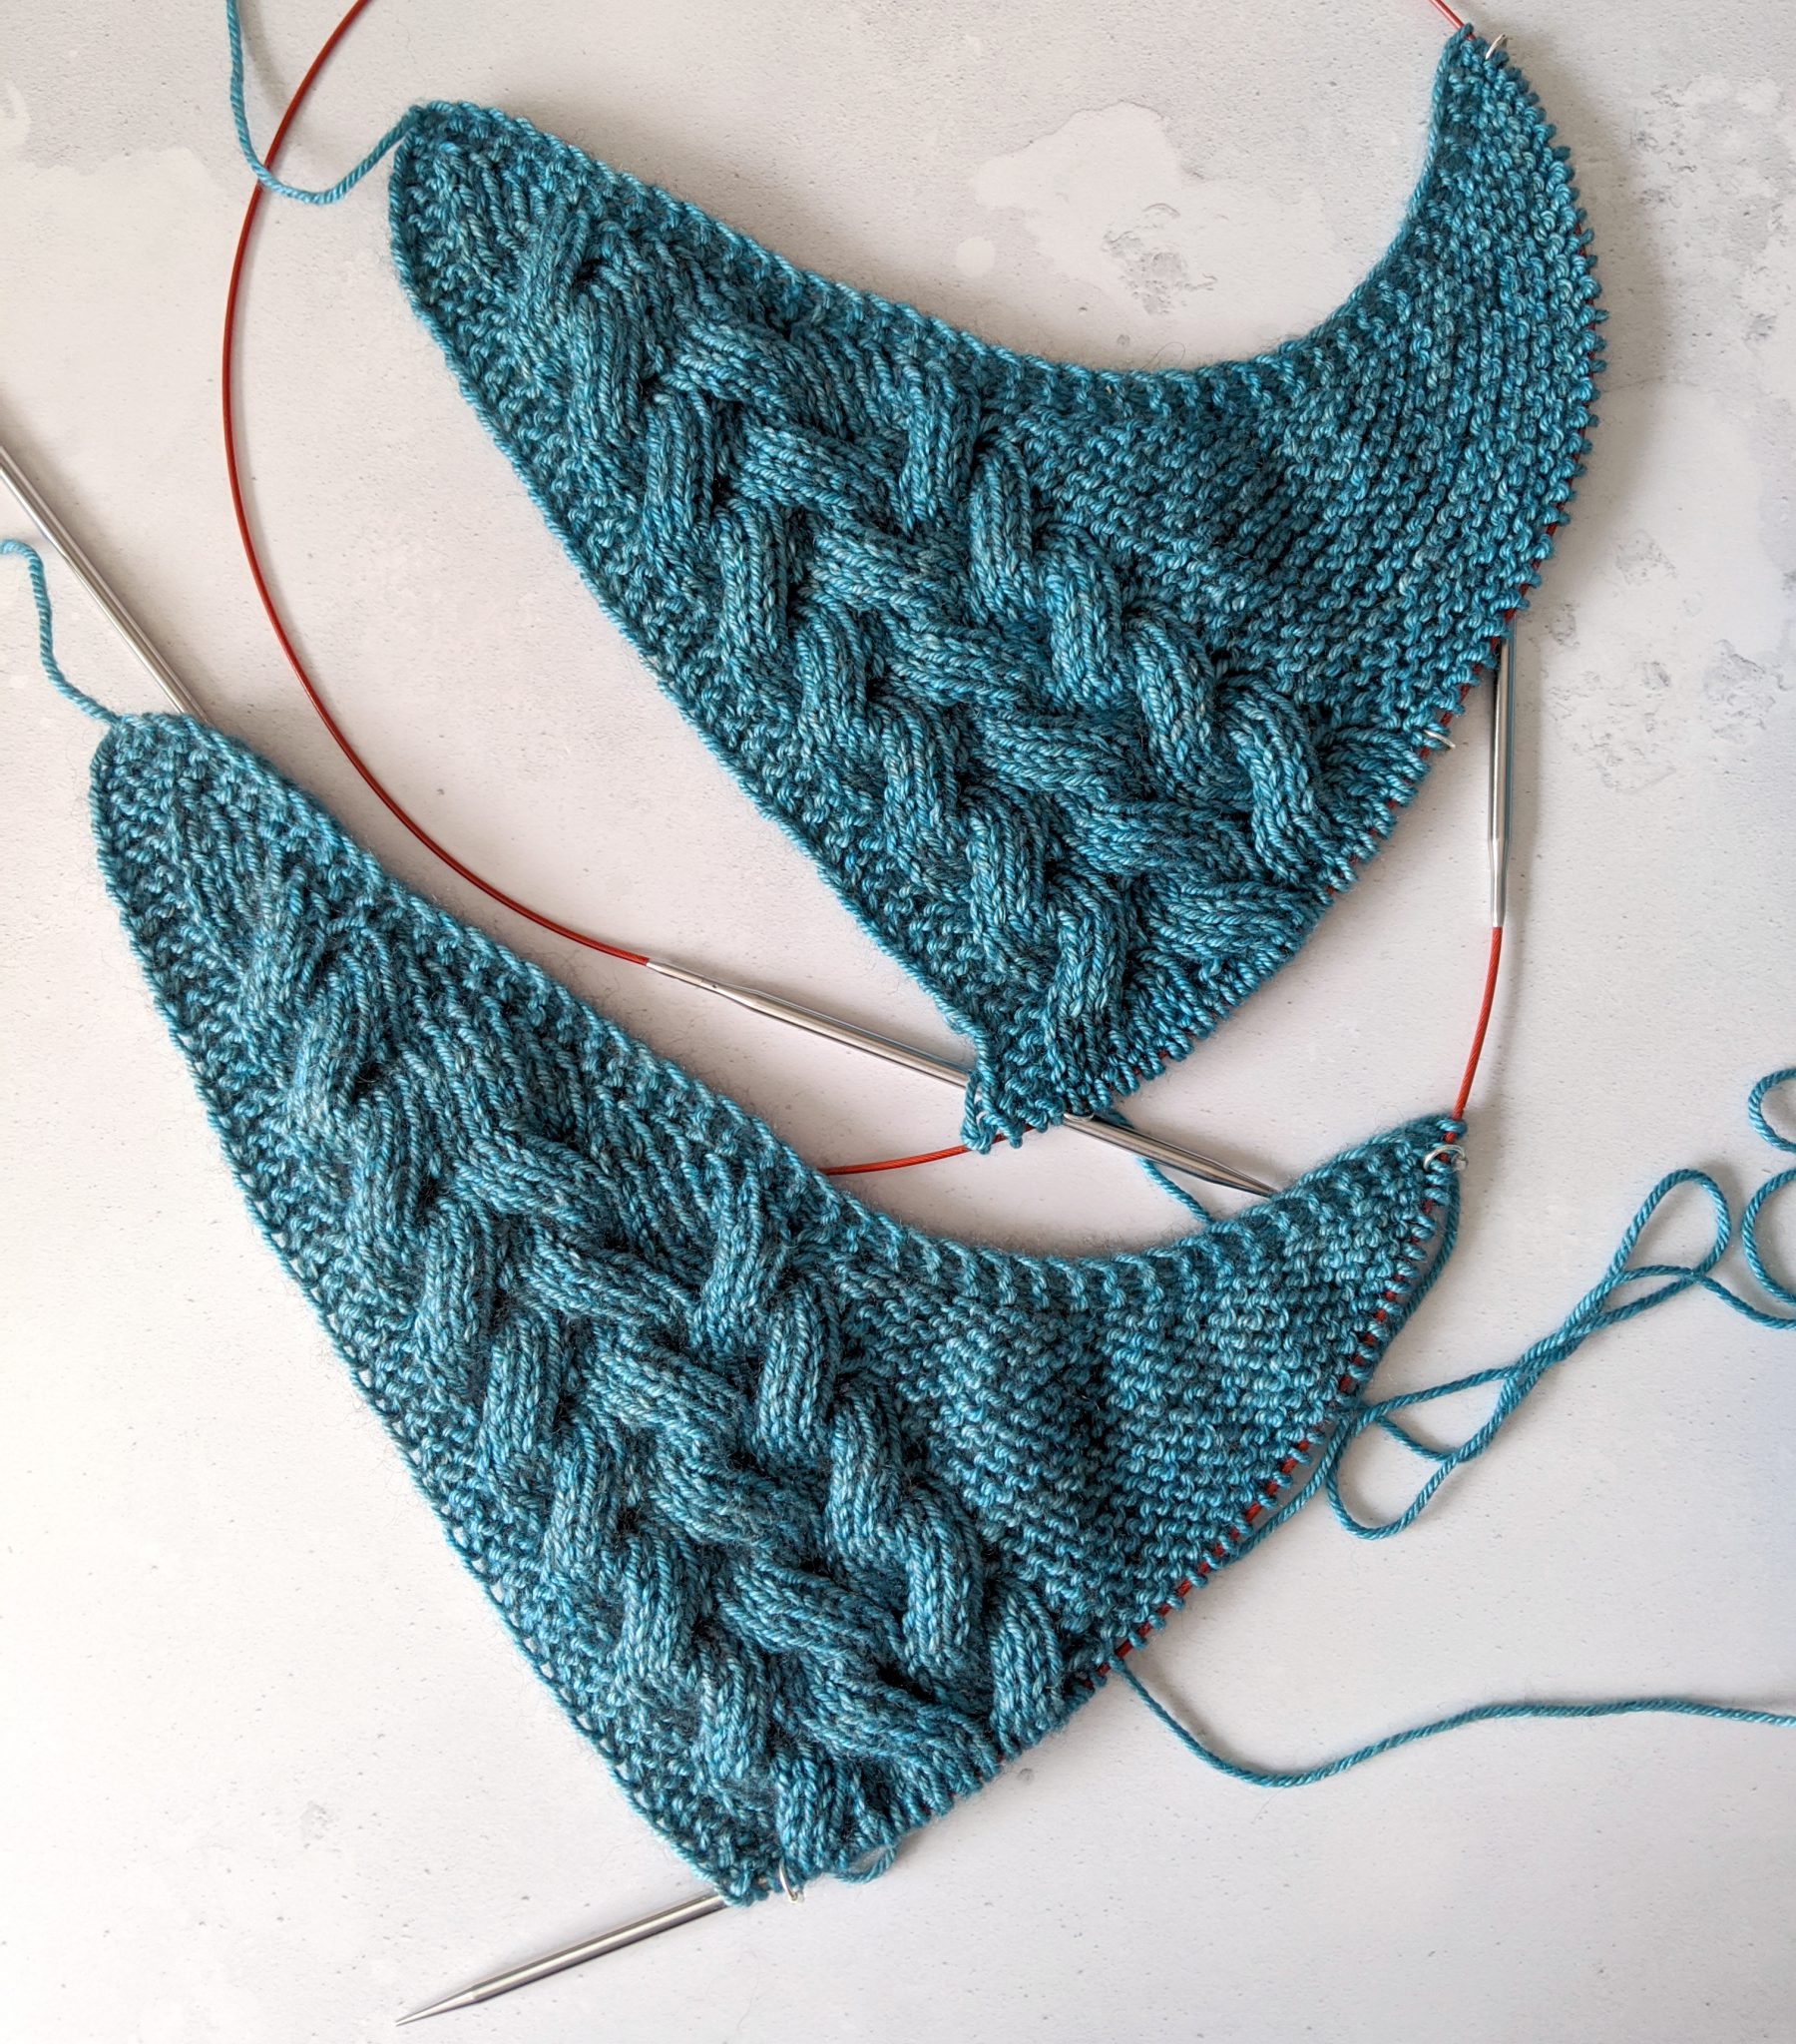 The cabled set up section of the same shawl with slightly different lengths